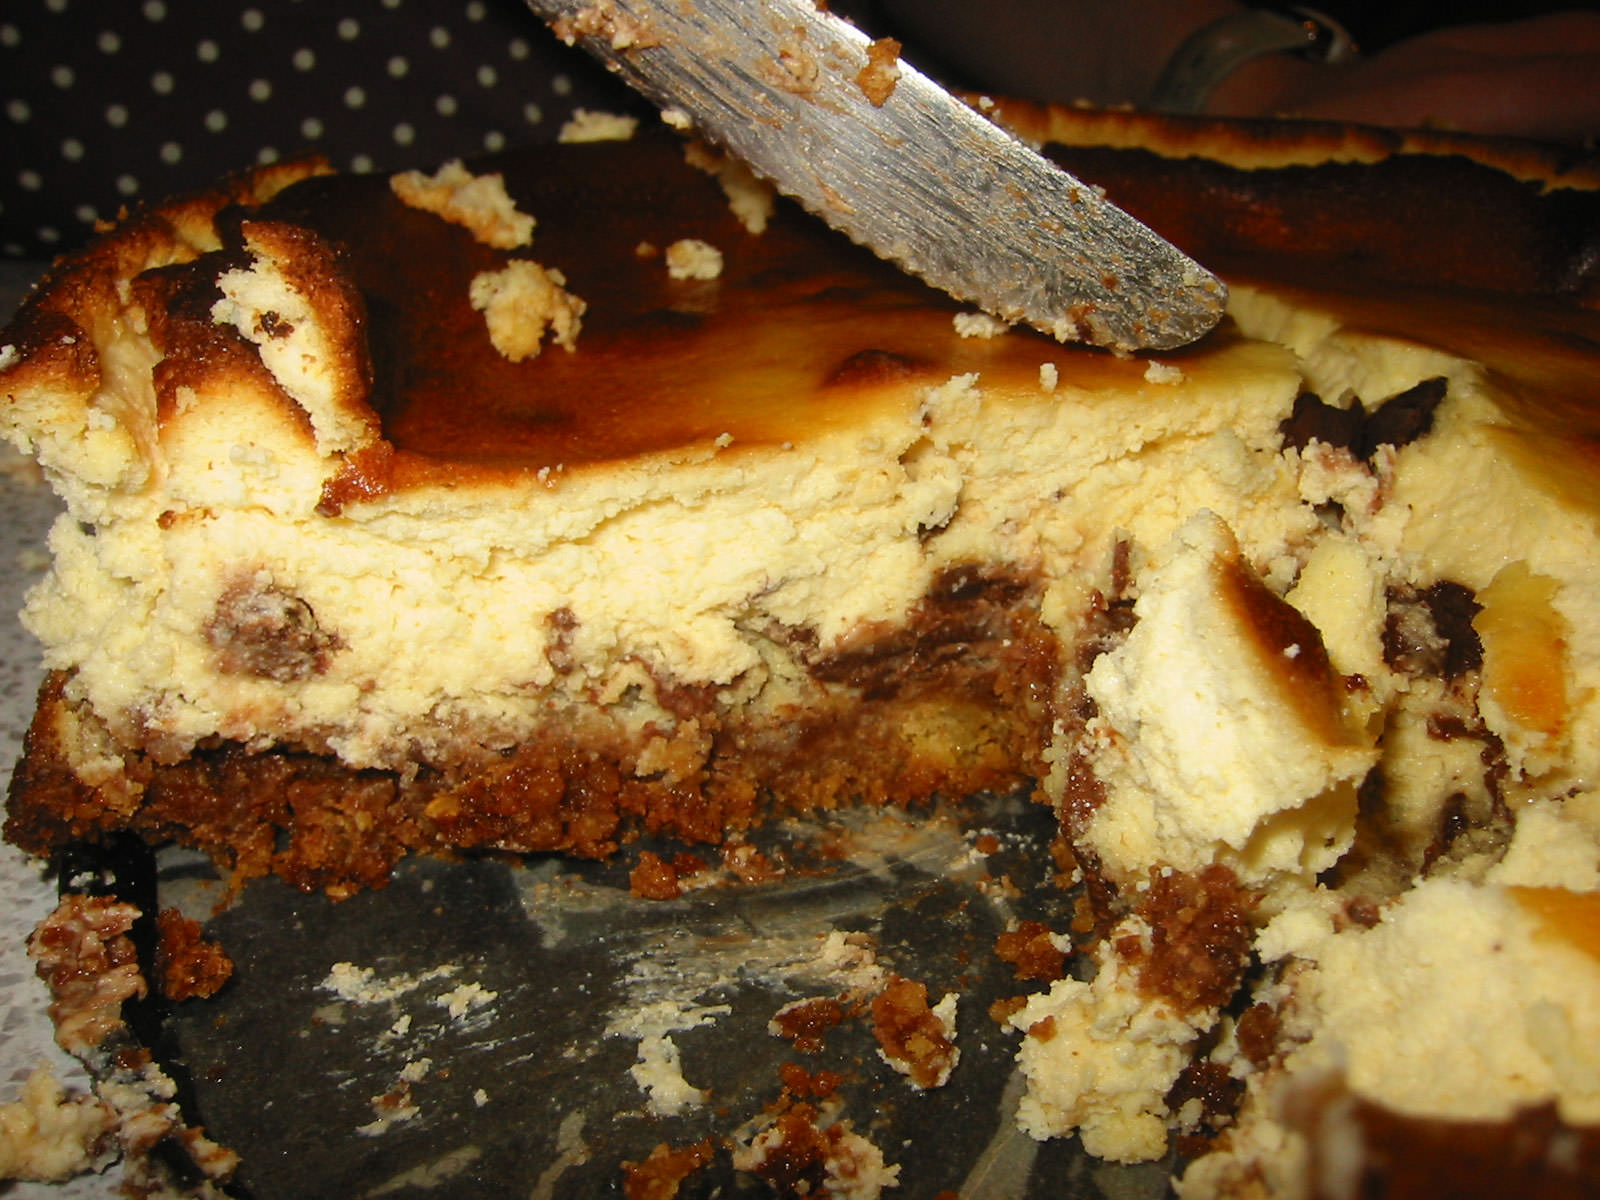 Baked chocolate cheese cake